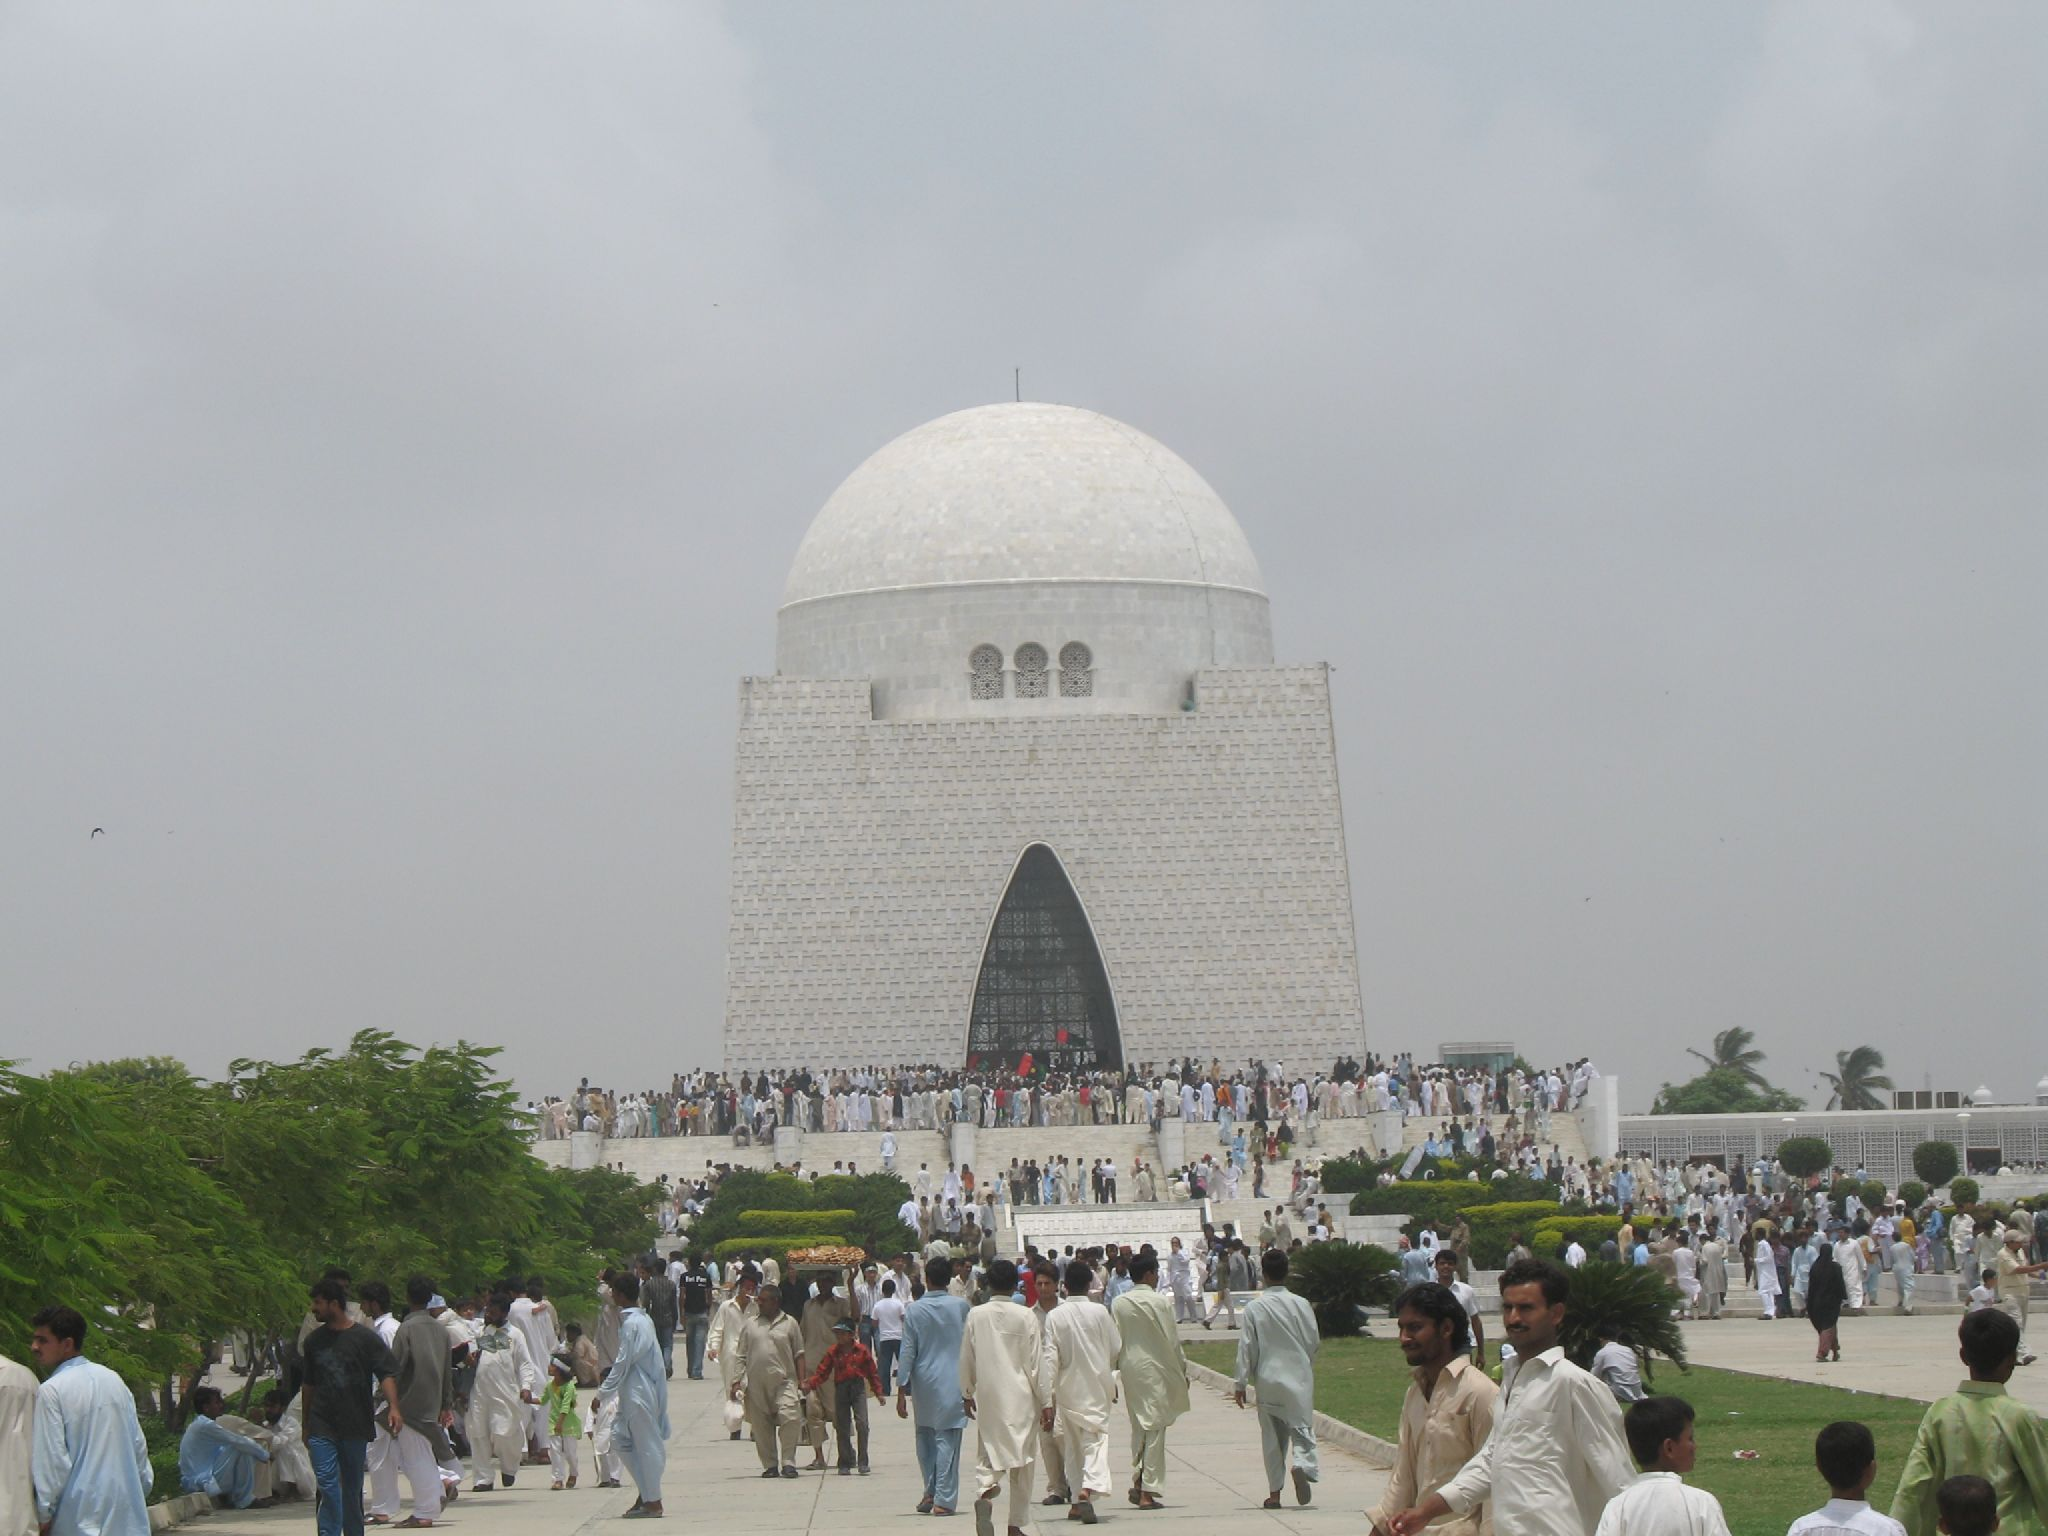 essay on quaid-e-azam tomb Quaid-e-azam quaid e azam mohammad ali jinnah essay in english ali jinnah was born on december 25th,to a mercantile family in karachi muhammad ali jinnah on the advice of an english friend, his father decided to send him to england to.